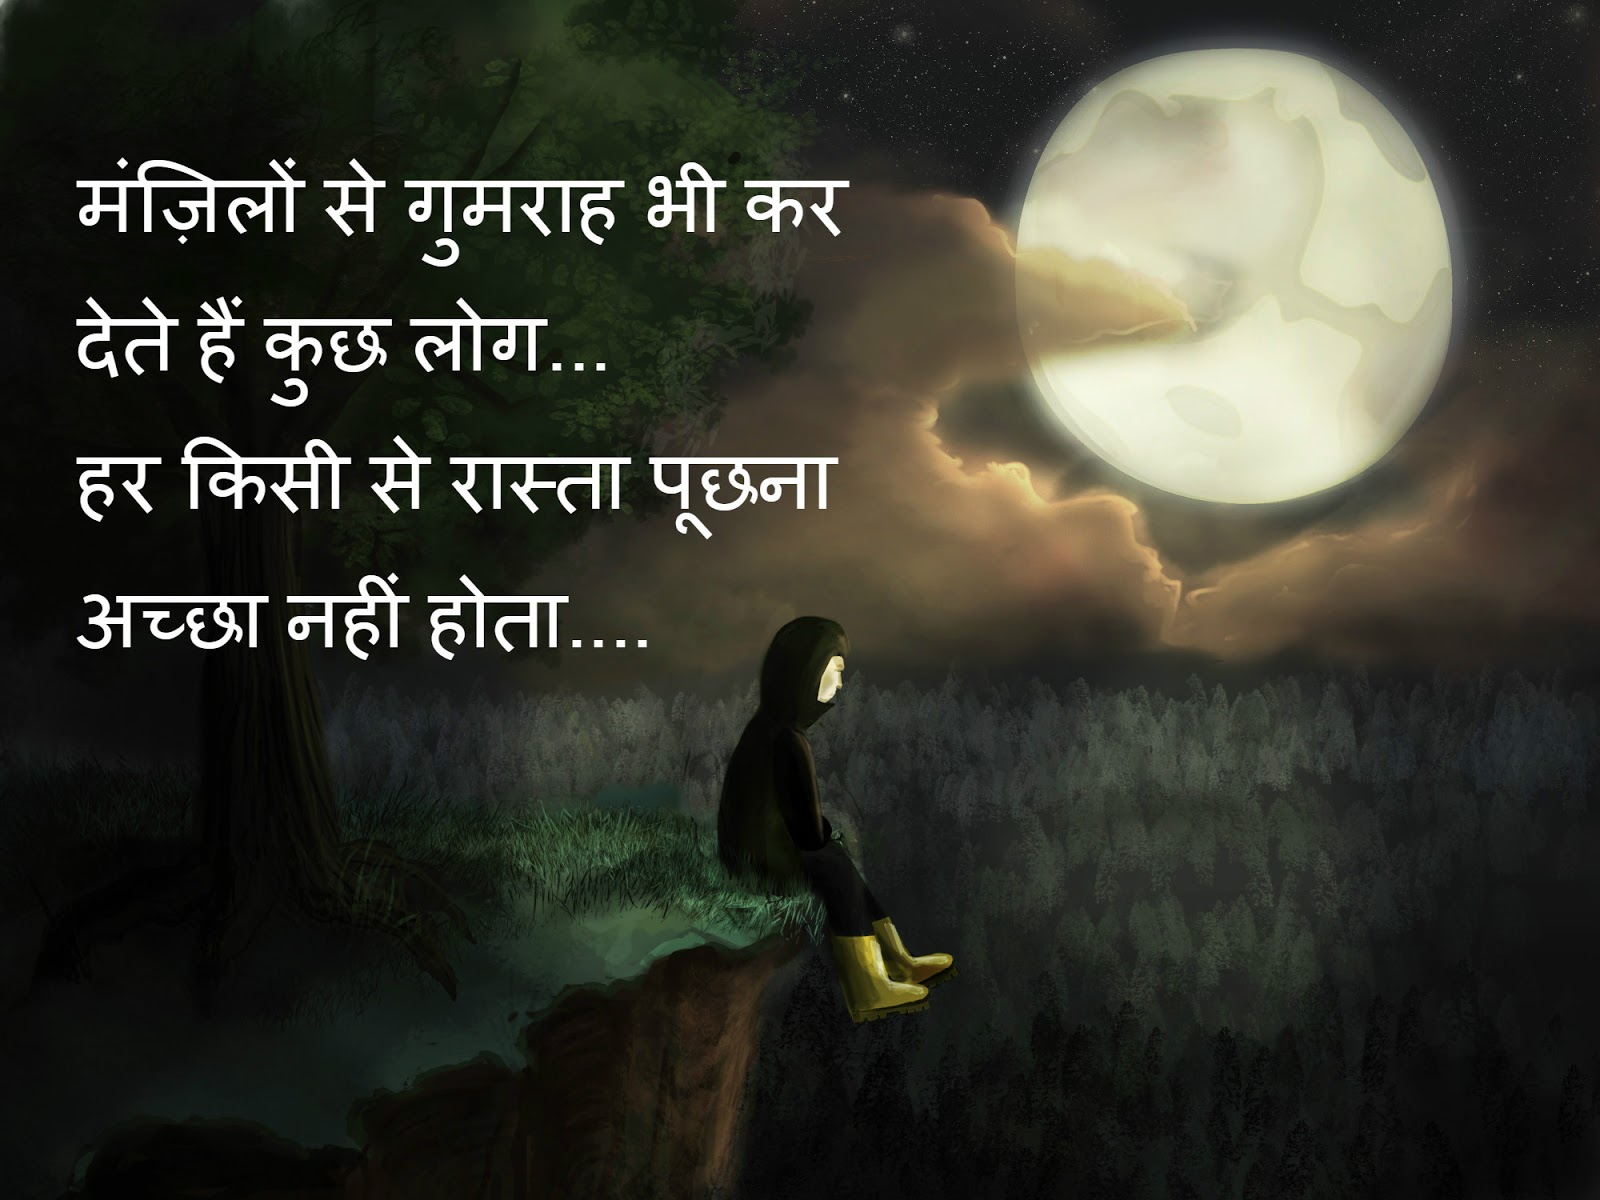 Wallpaper download love shayri - Love Shayari Images For Lovers 2016